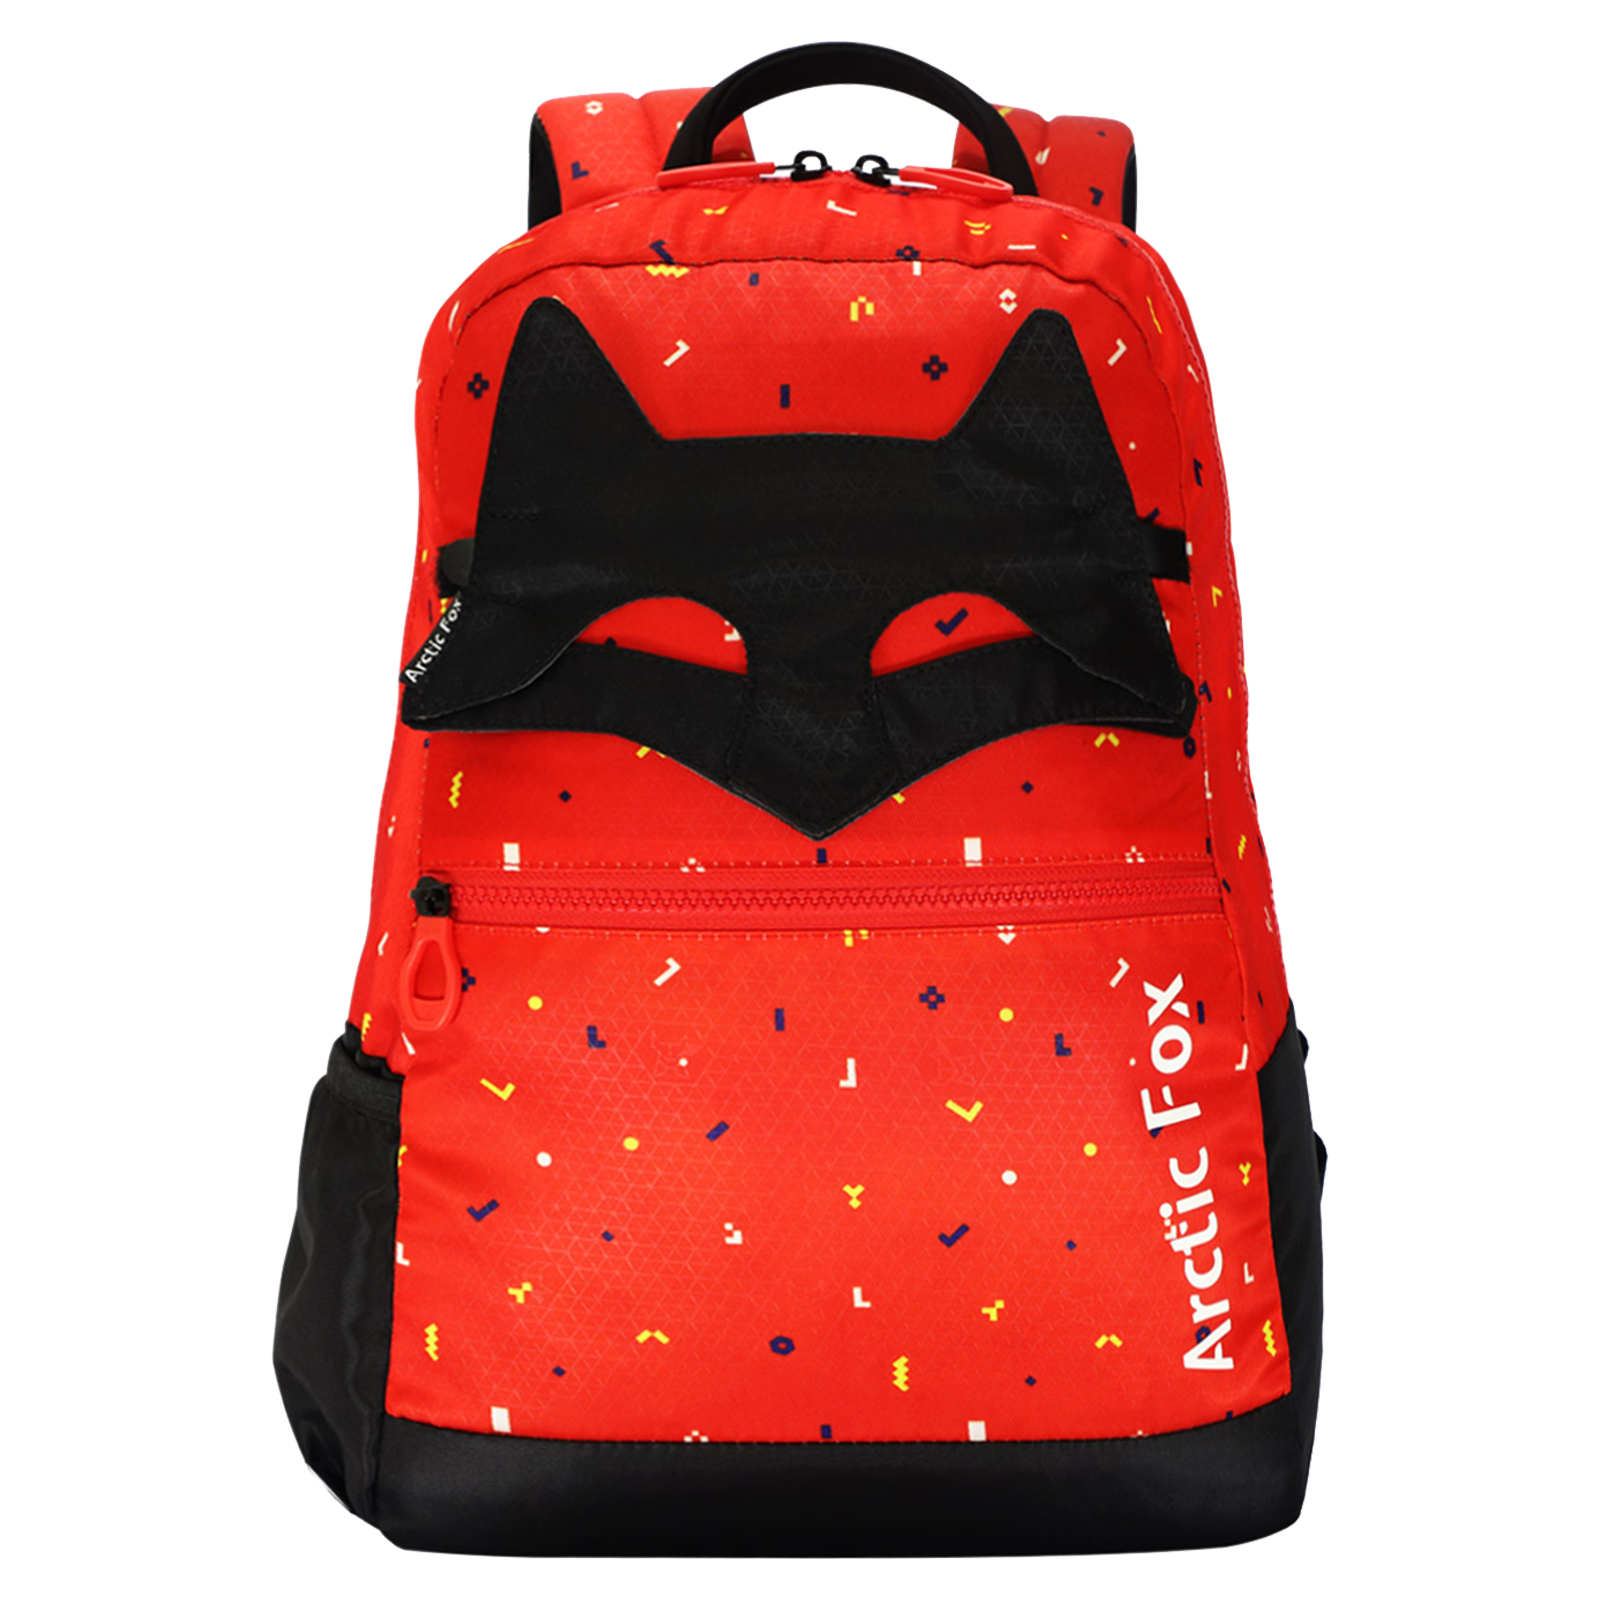 Arctic Fox Mask 17 Litres PU Coated Polyester Backpack (FKIBPKFIRON004017, Red)_1